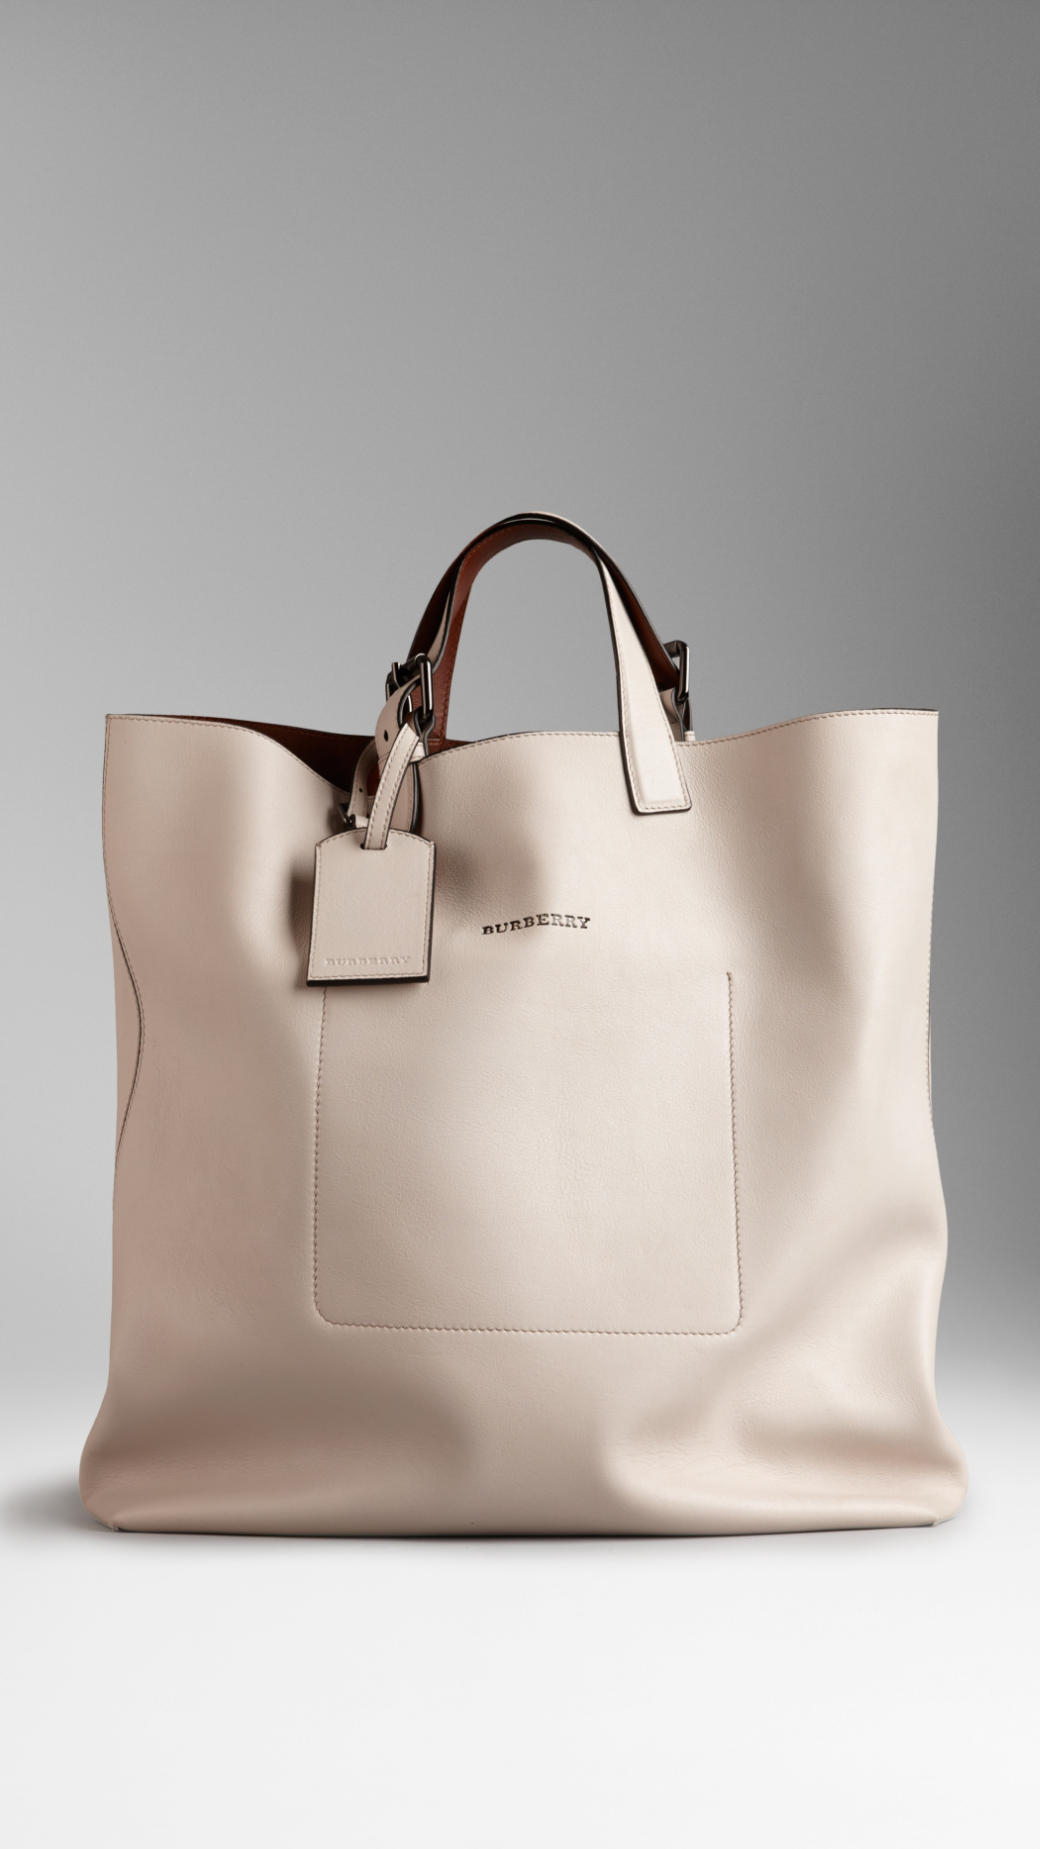 d1b1a4142b Burberry Large Bonded Leather Portrait Tote Bag in Natural - Lyst